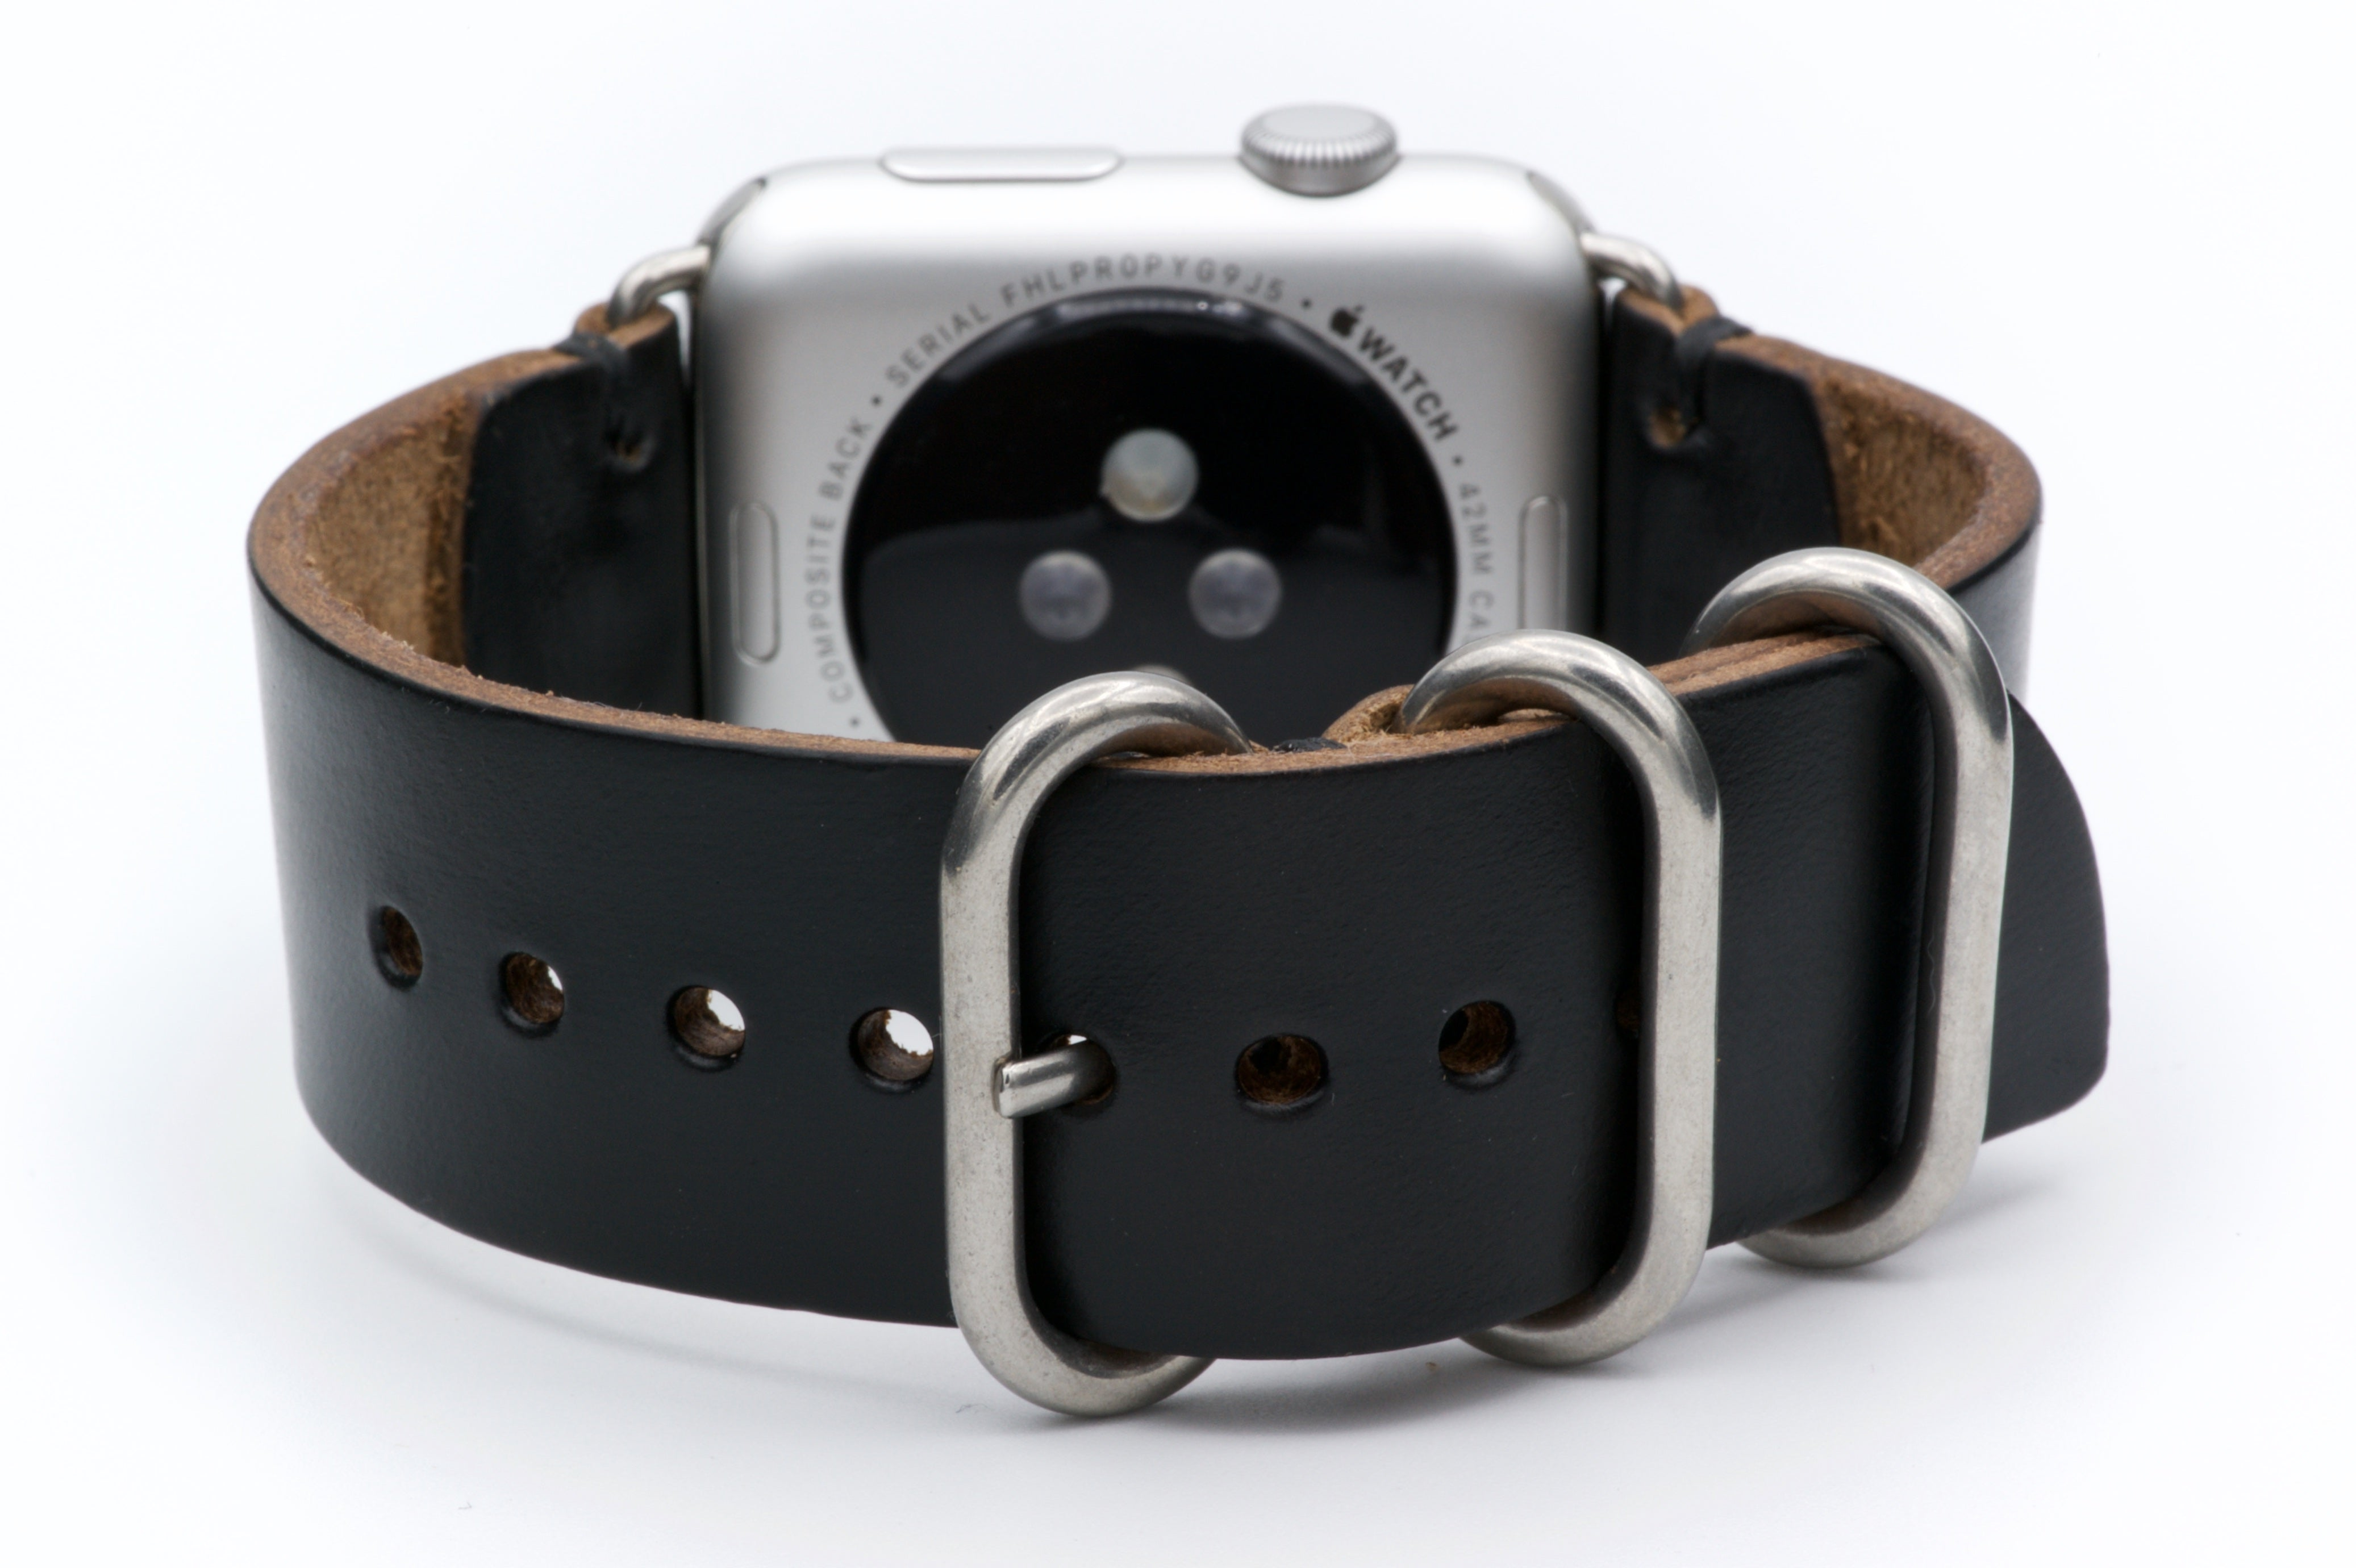 Apple Watch Band for Series 4, 3, 2, 1, and Sport Editions - by E3 Supply Co. - Black Chromexcel Horween Leather